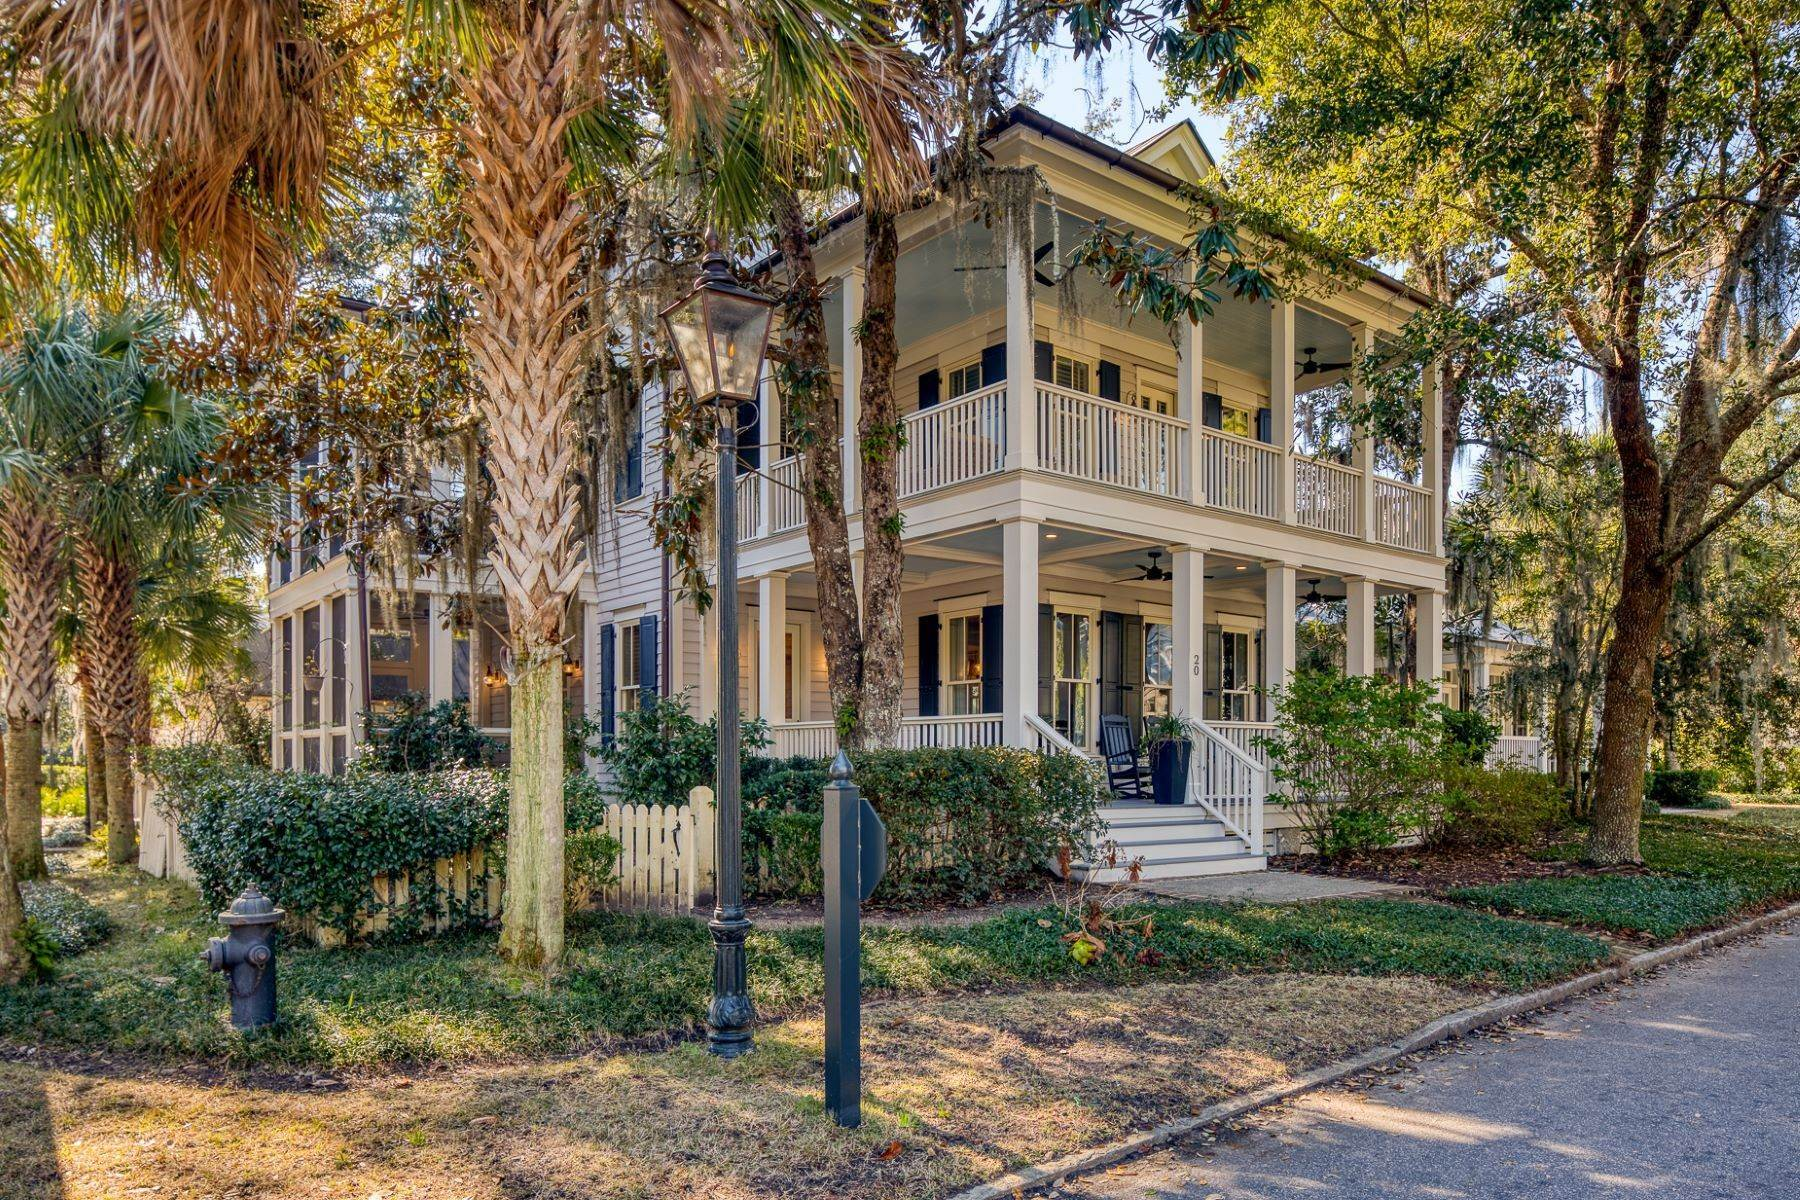 Single Family Homes for Sale at The Heart of Wilson Village 20 S. Drayton Street Bluffton, South Carolina 29910 United States